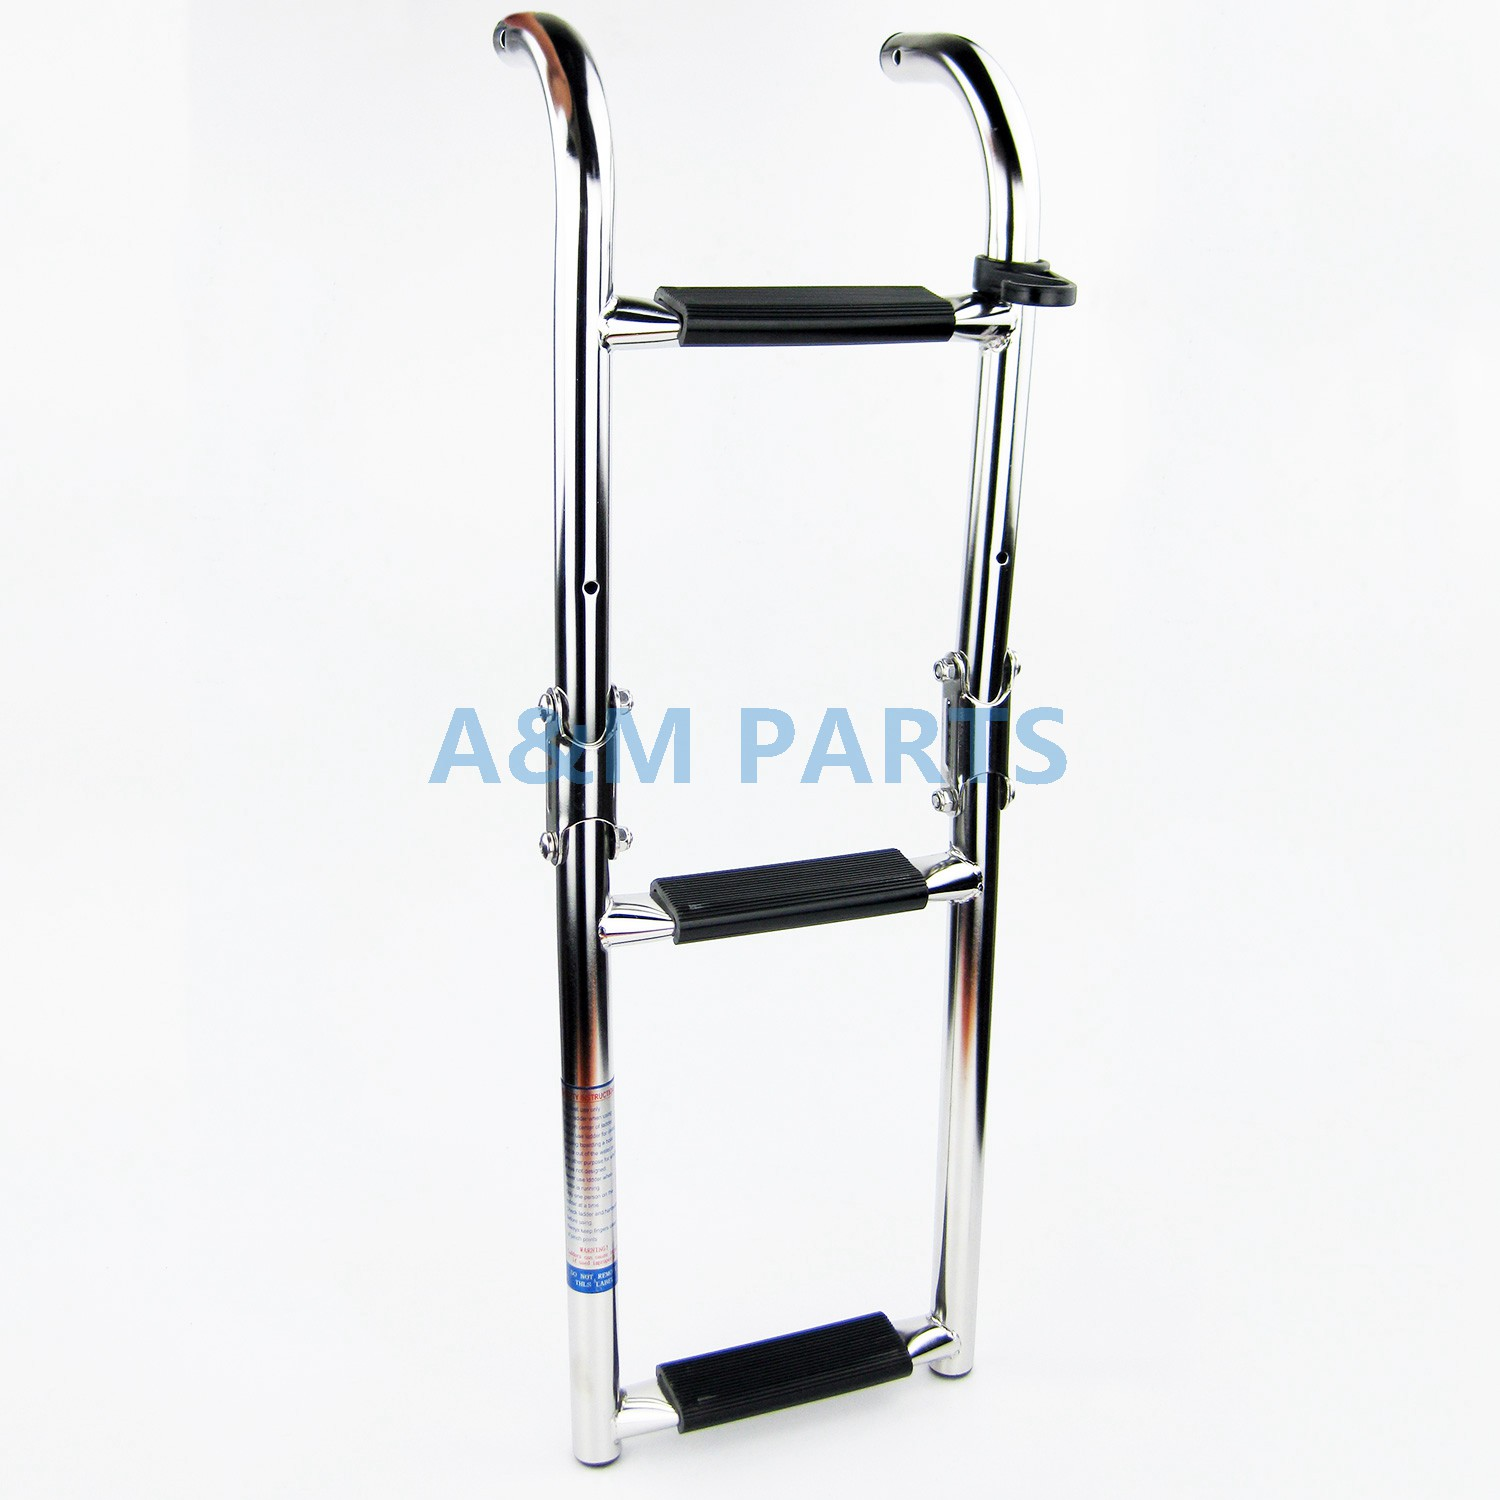 Marine Boat Folding Ladder Pontoon Transom Boarding Ladder 3 Step Narrow Type Stainless